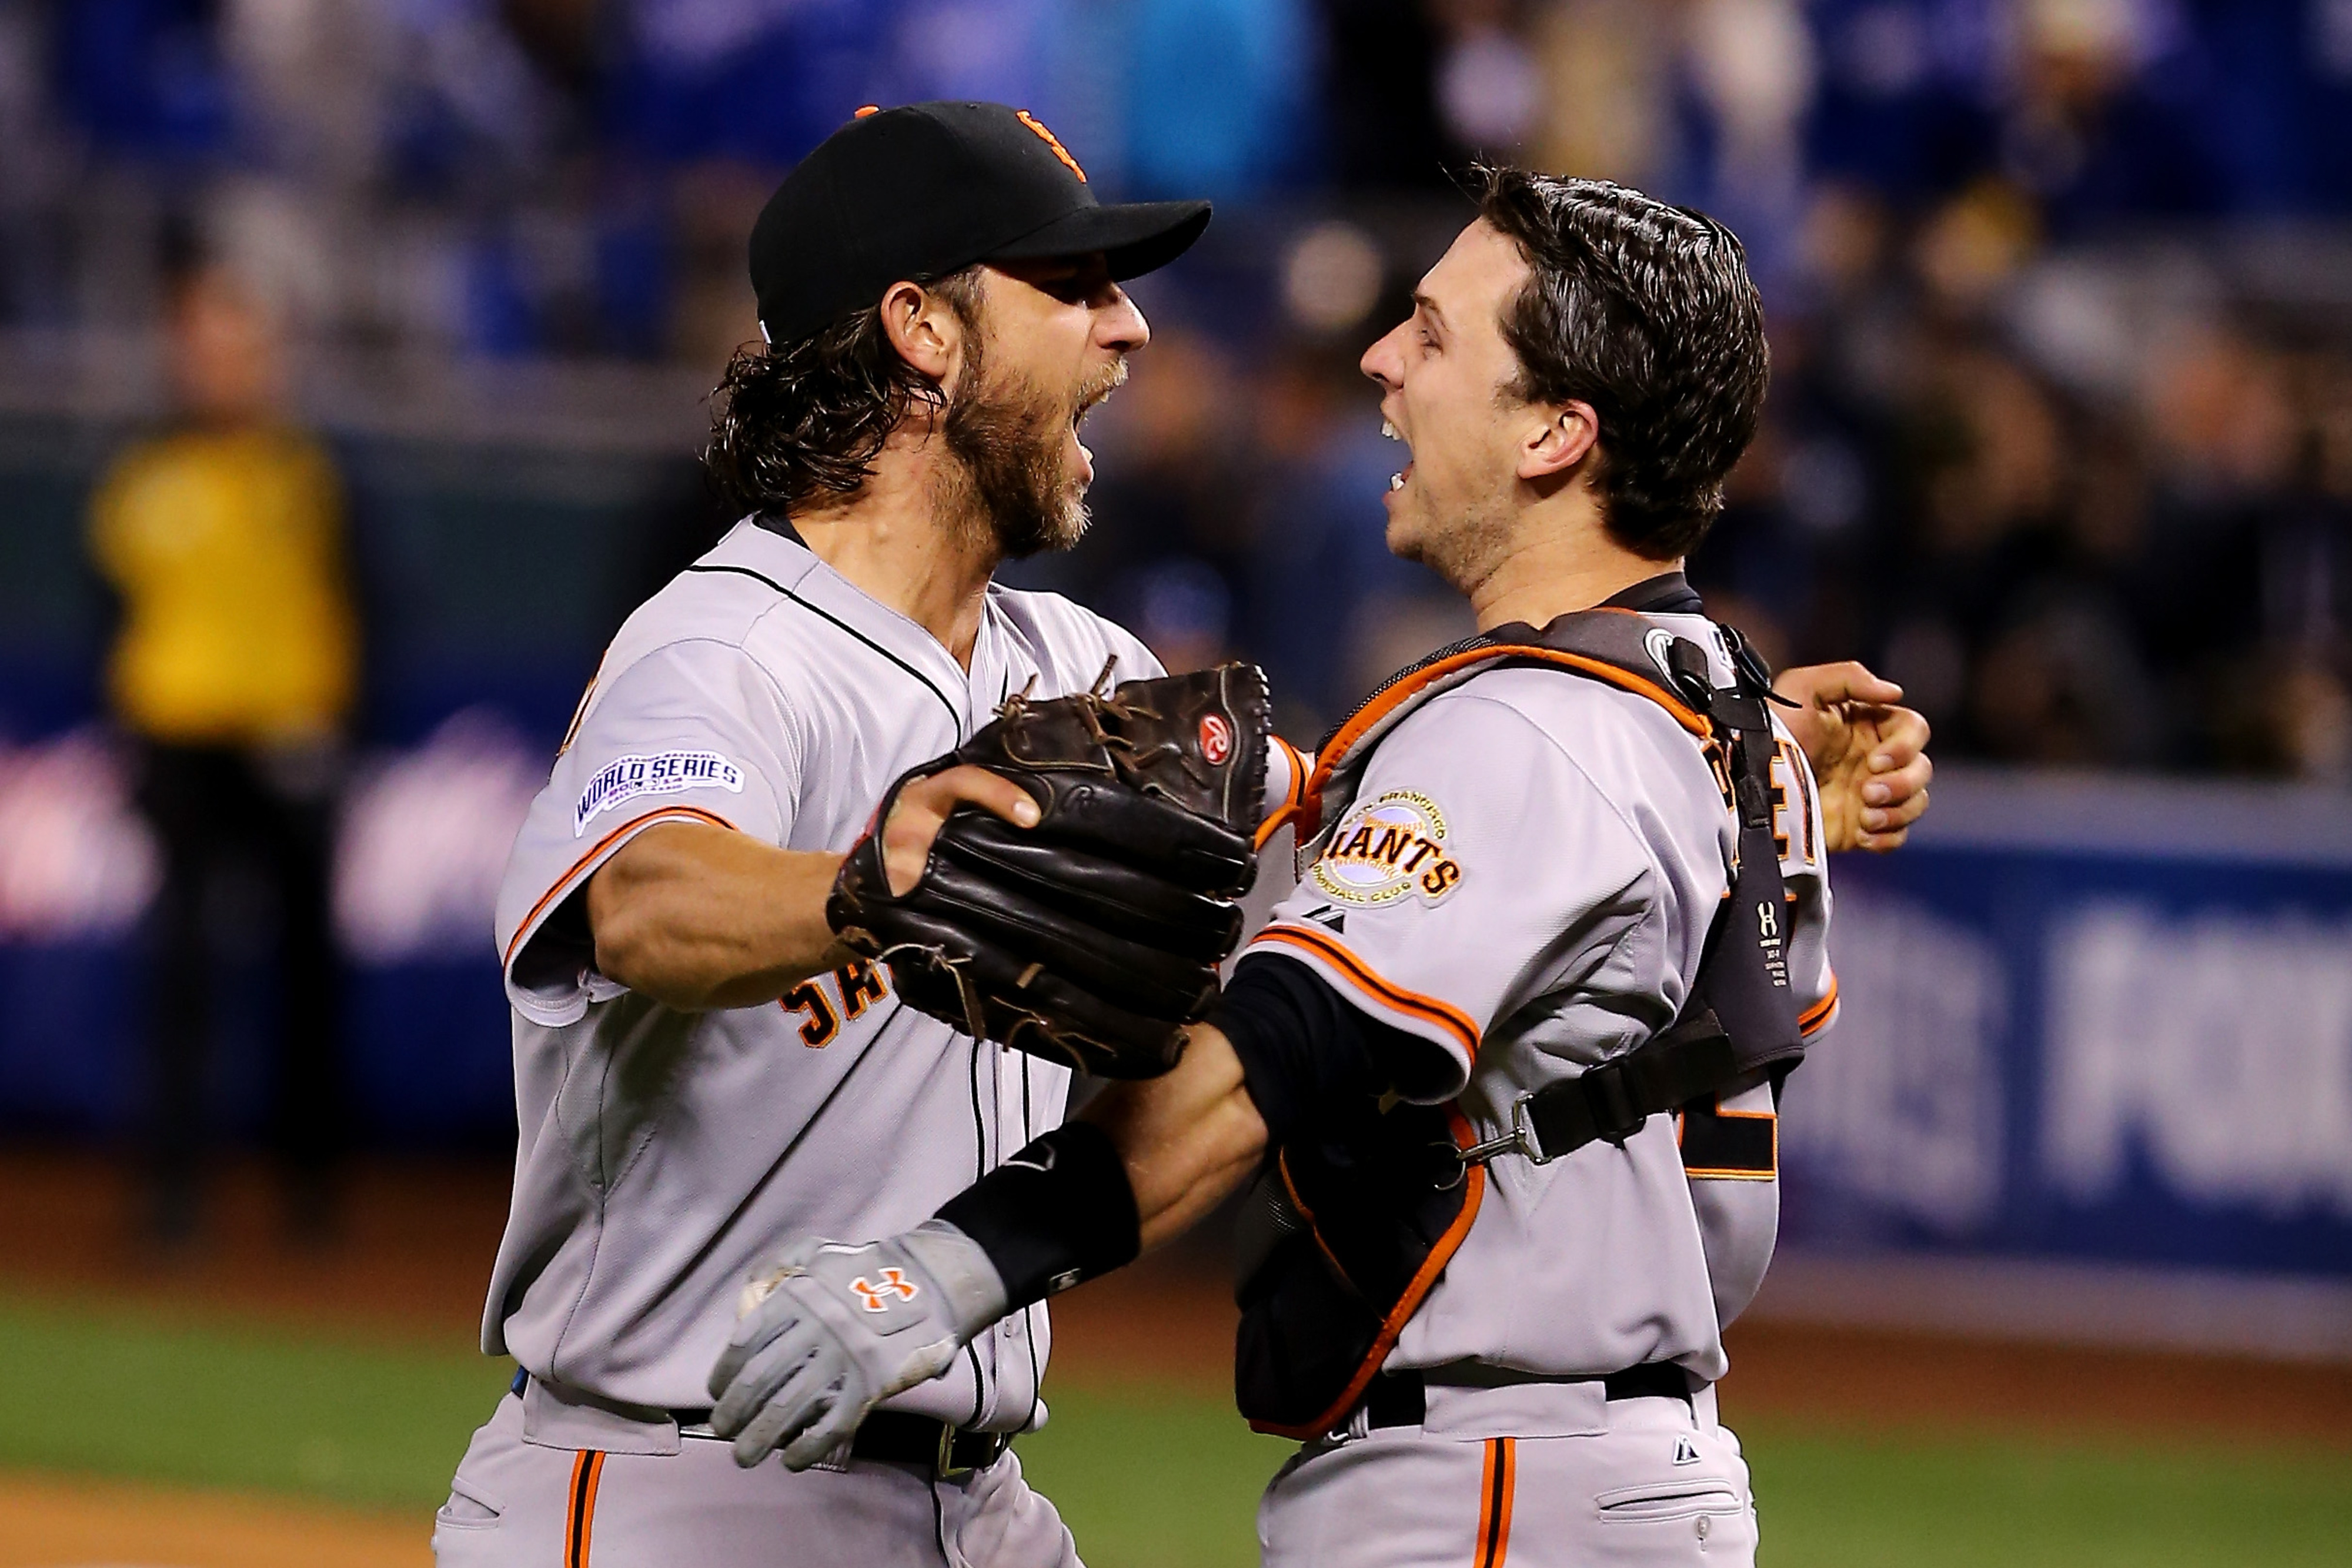 Brian Sabean/Bruce Bochy dynasty more old school than Royals in Game 7